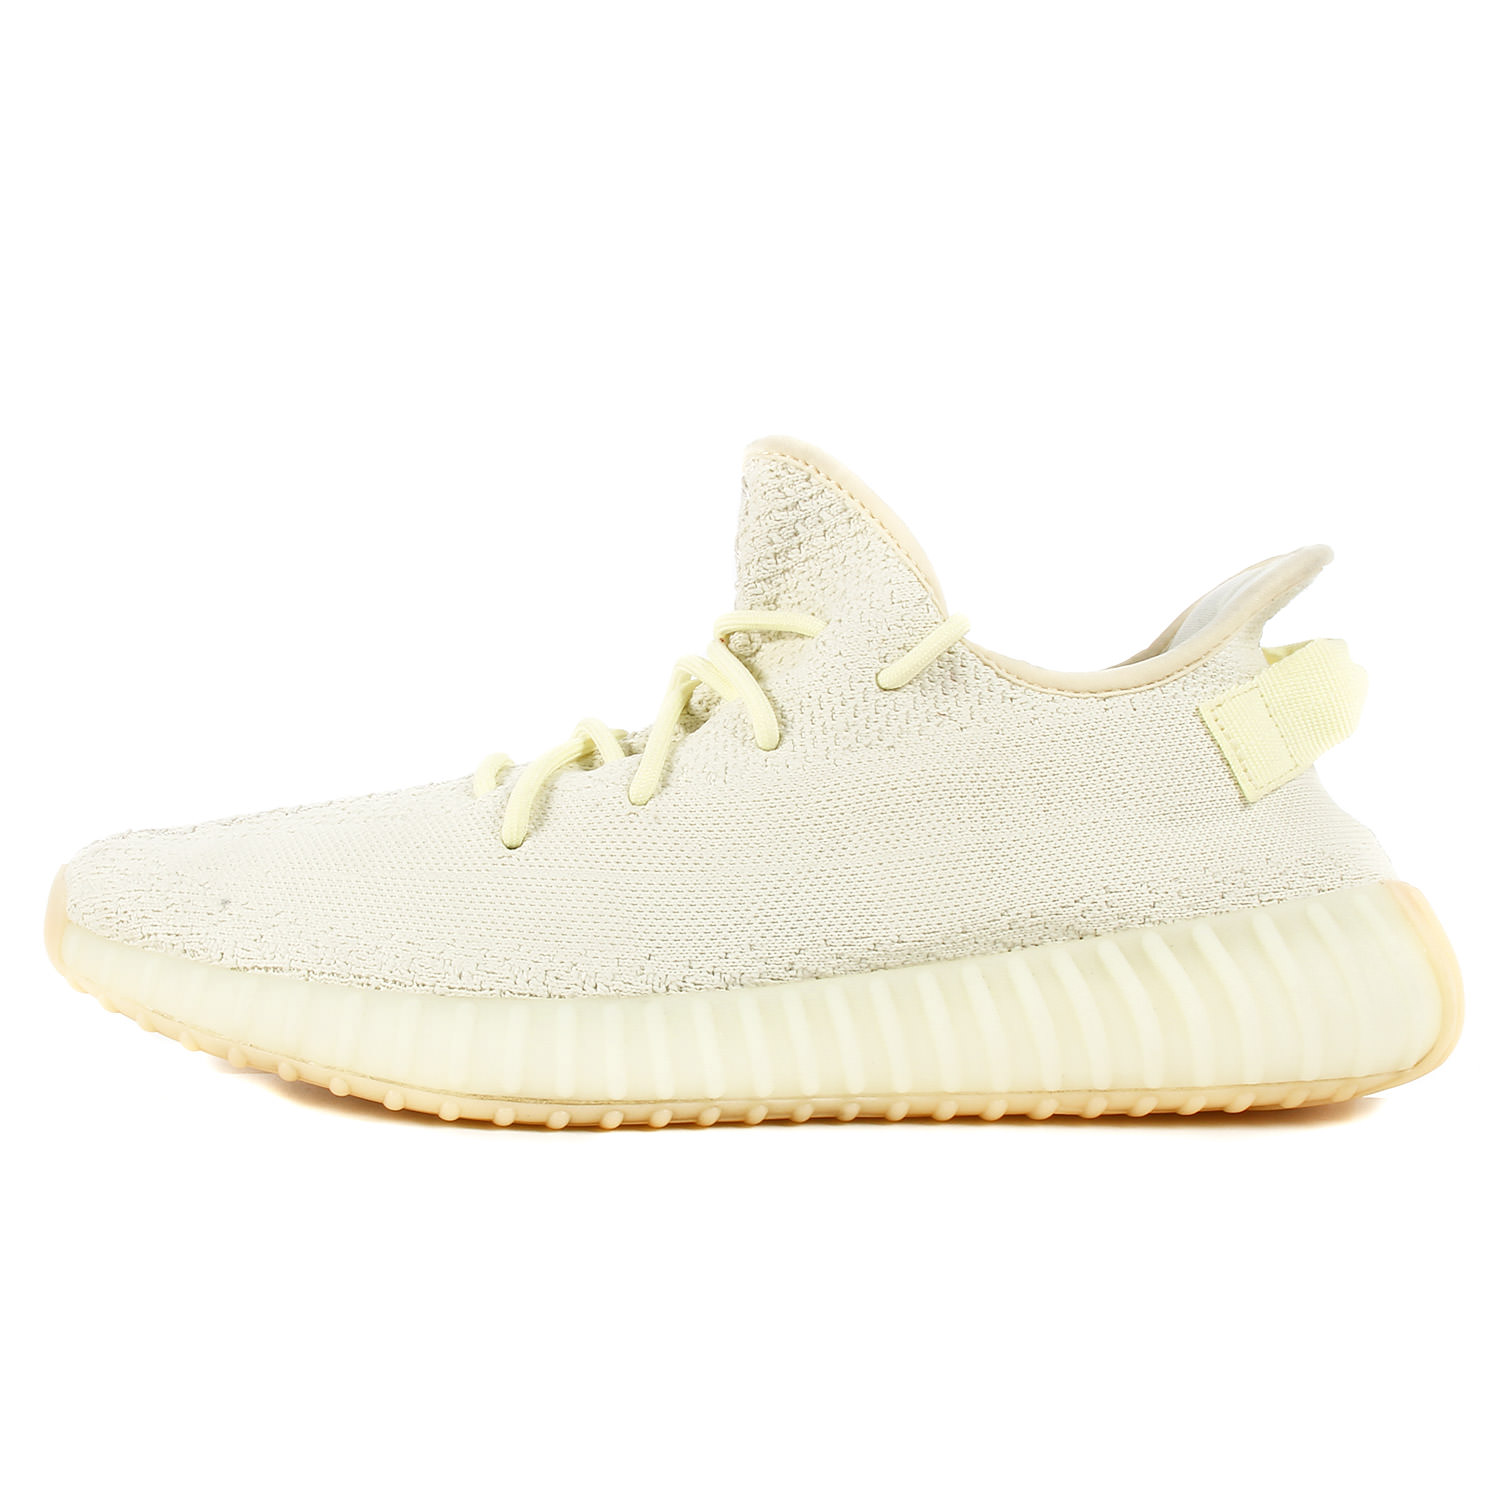 18SS YEEZY BOOST 350 V2 BUTTER (F36980)